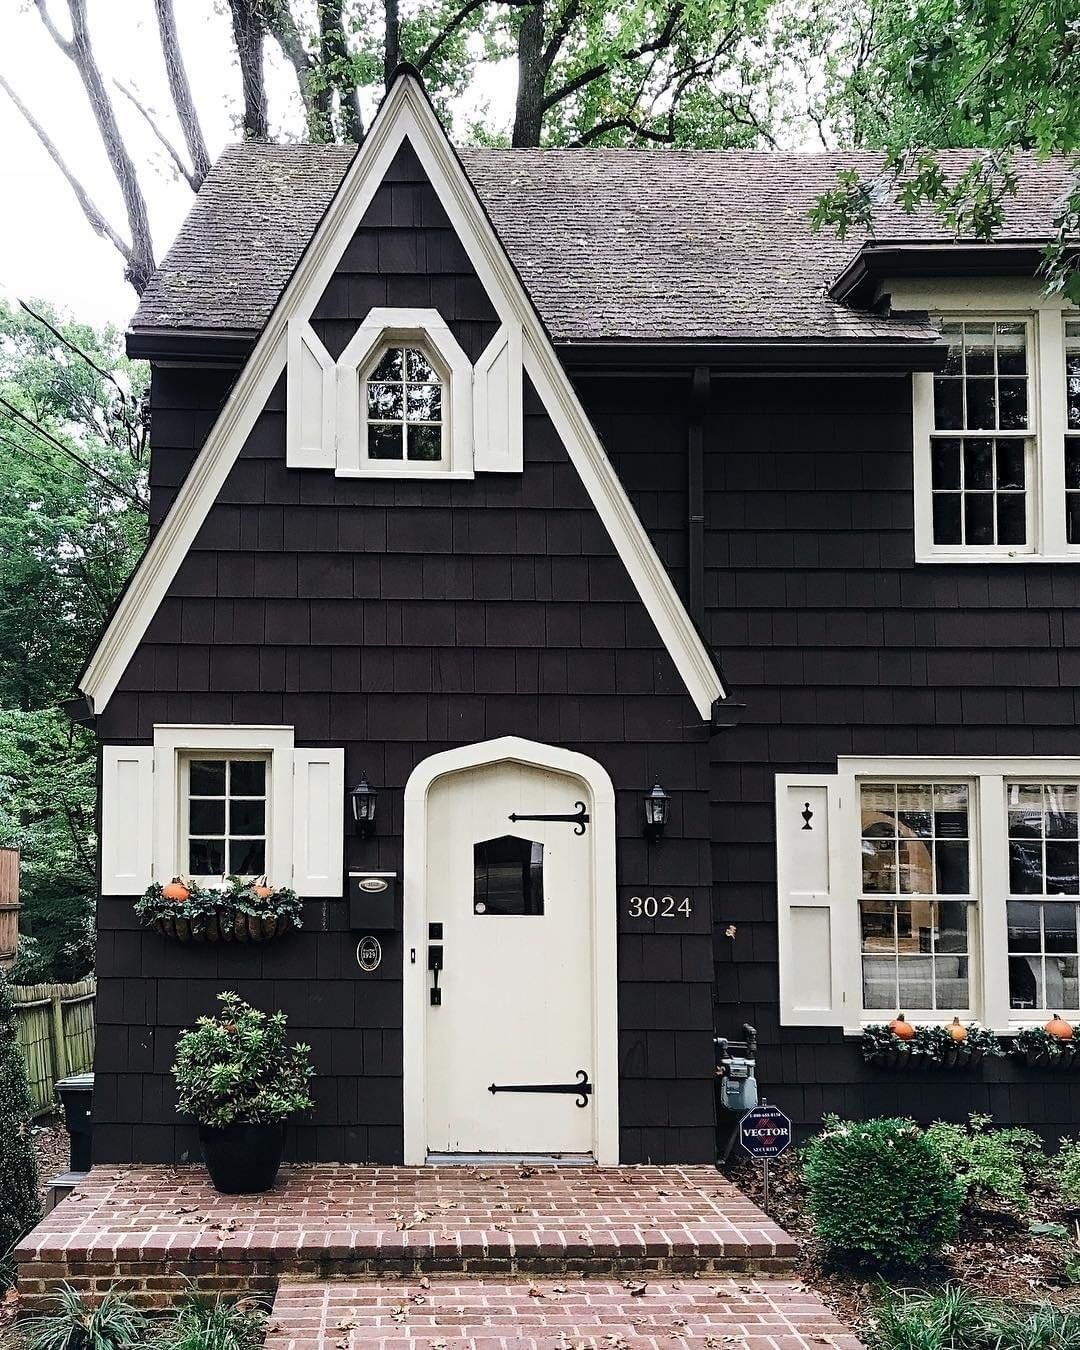 Uniqfind On Instagram This Scandinavian Inspired Cottage Has Our Hearts Via Austinrutland House Exterior House My Dream Home